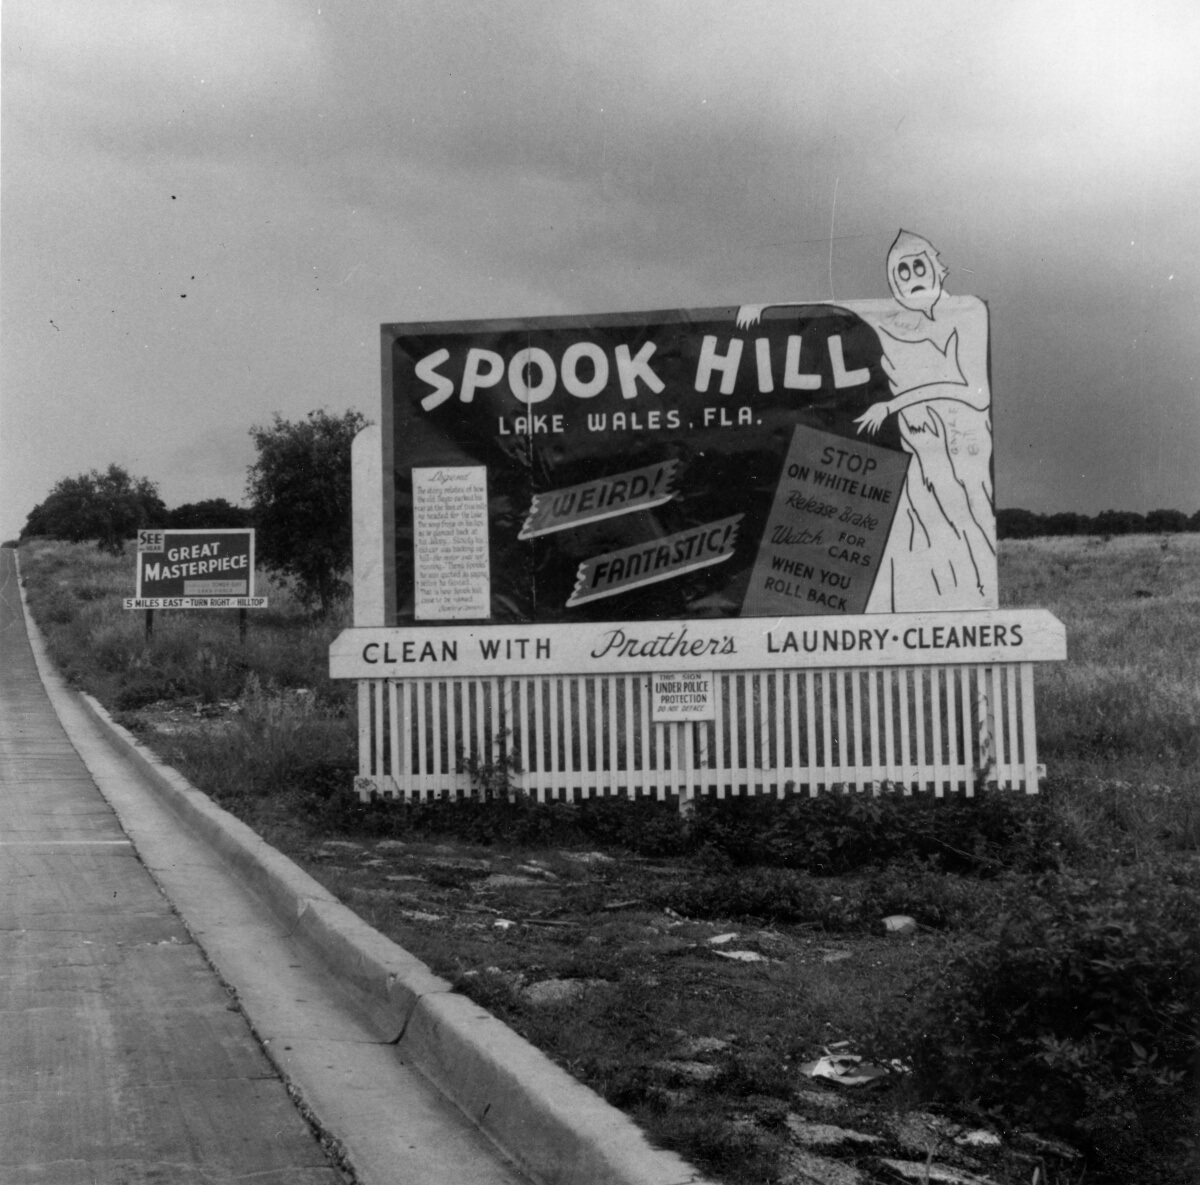 vintage black and white photo of road sign for spook hill